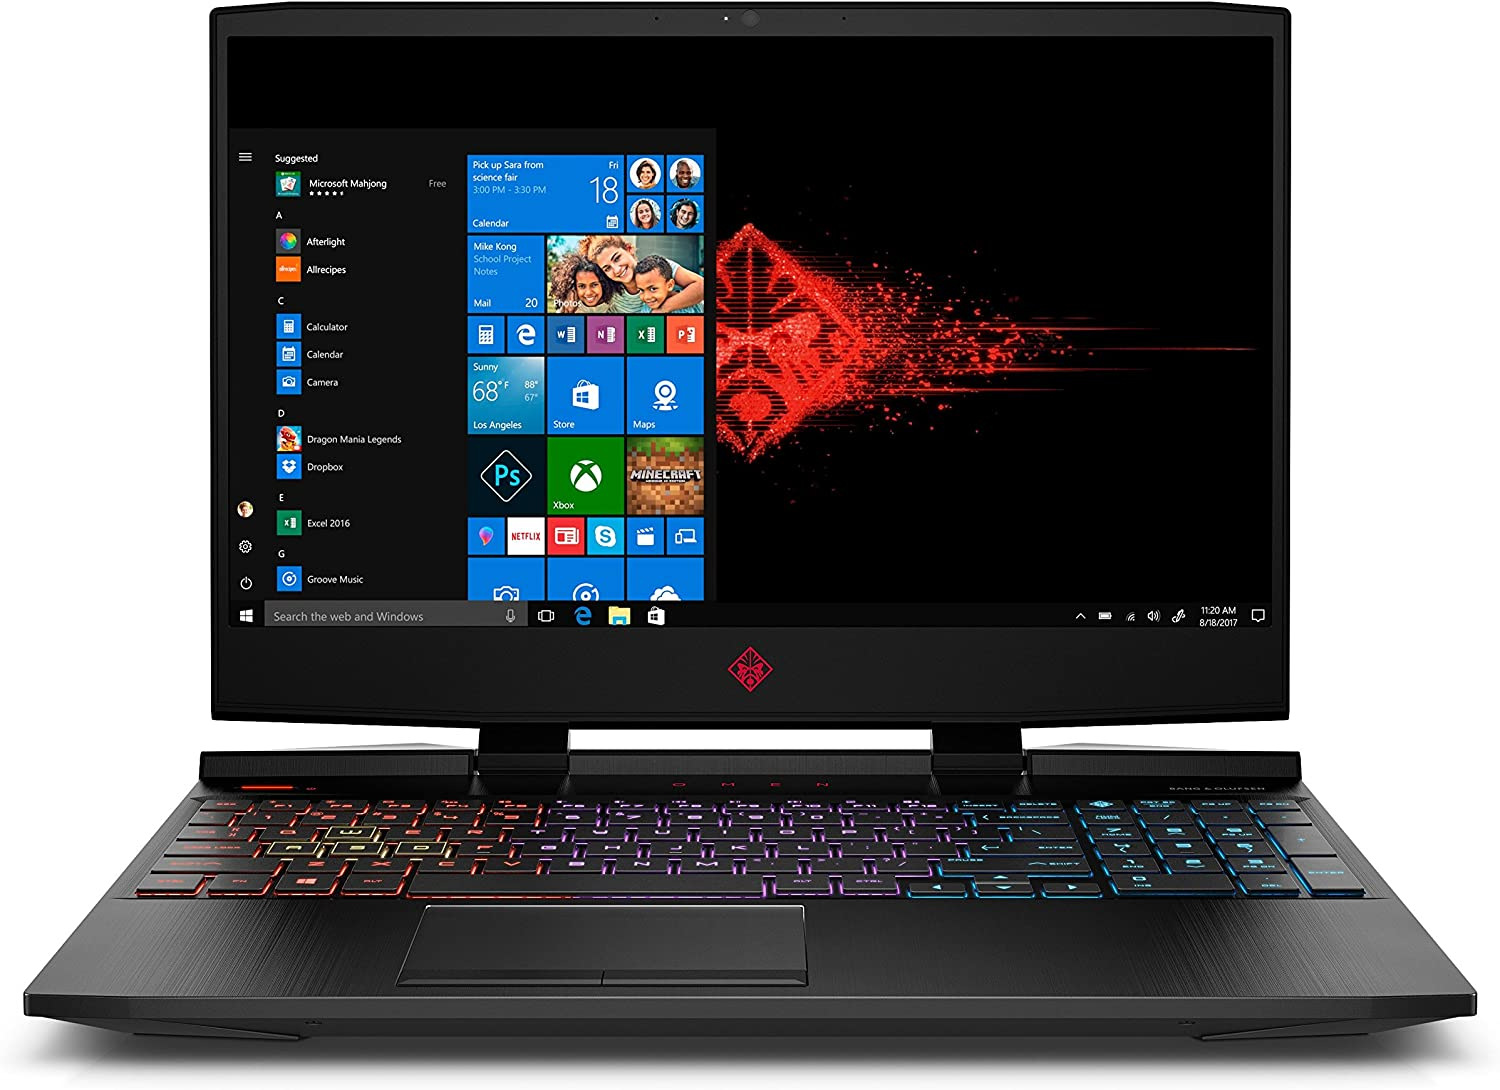 Omen by HP 2019 15-Inch Gaming Laptop, Intel i7-9750H Processor, GeForce RTX 2070 8 GB, 32 GB RAM, 512 GB SSD, VR Ready, Windows 10 (15-dc0030nr, Black)